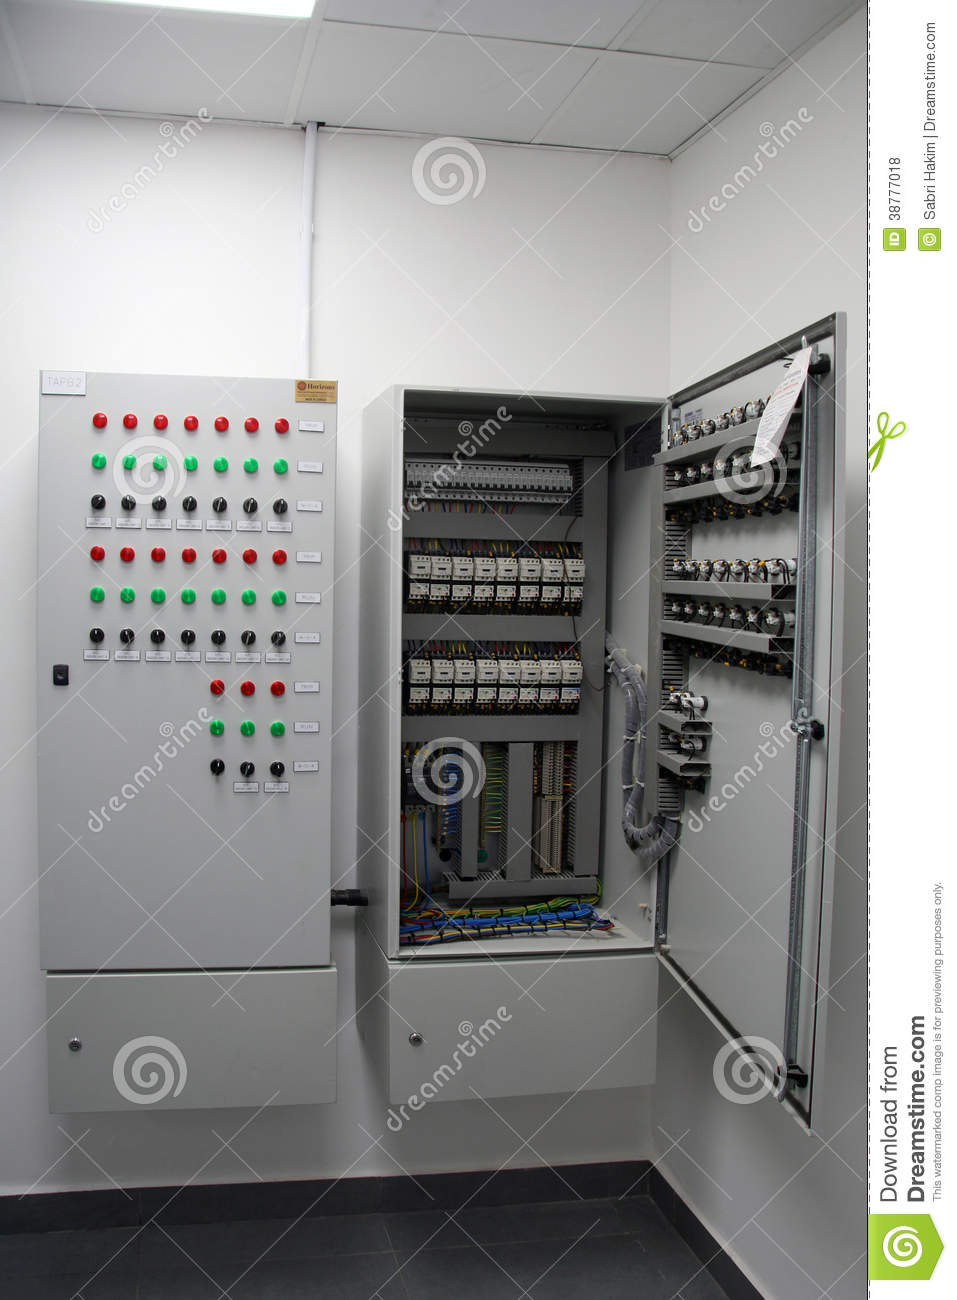 Electrical Cabinet Stock Photo  Image Of Electronic